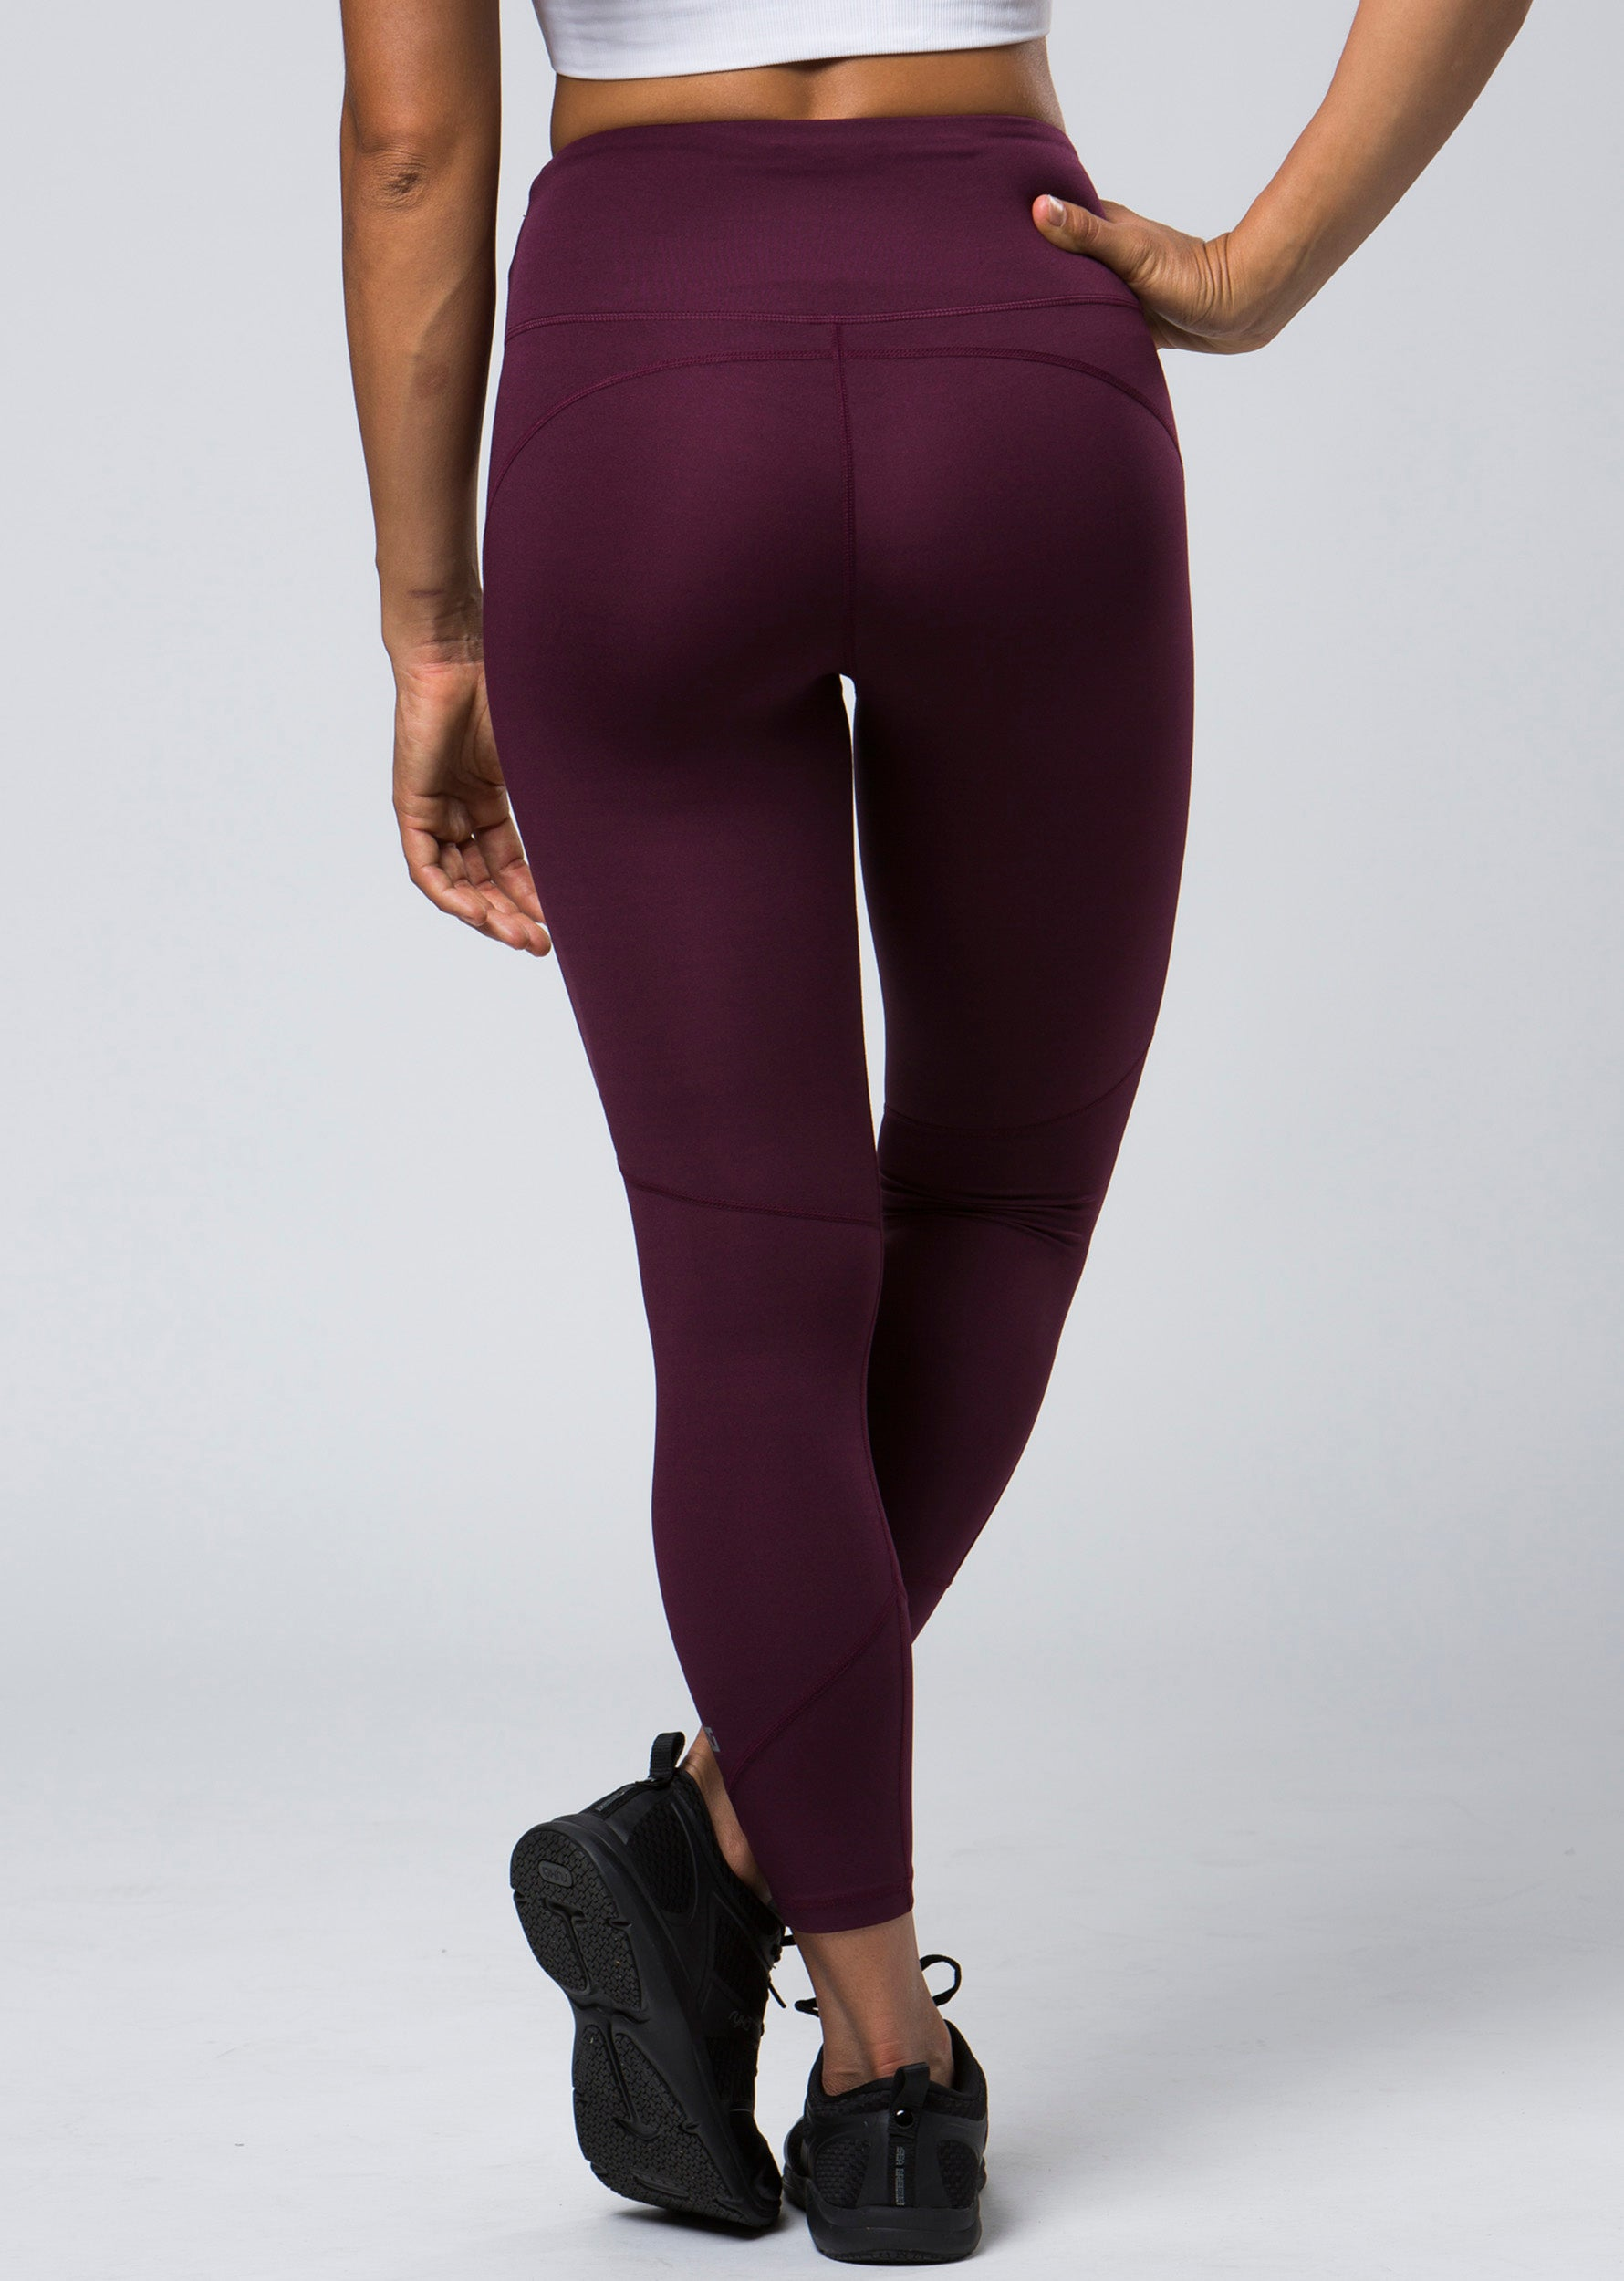 Excel 7/8 Legging - Burgundy